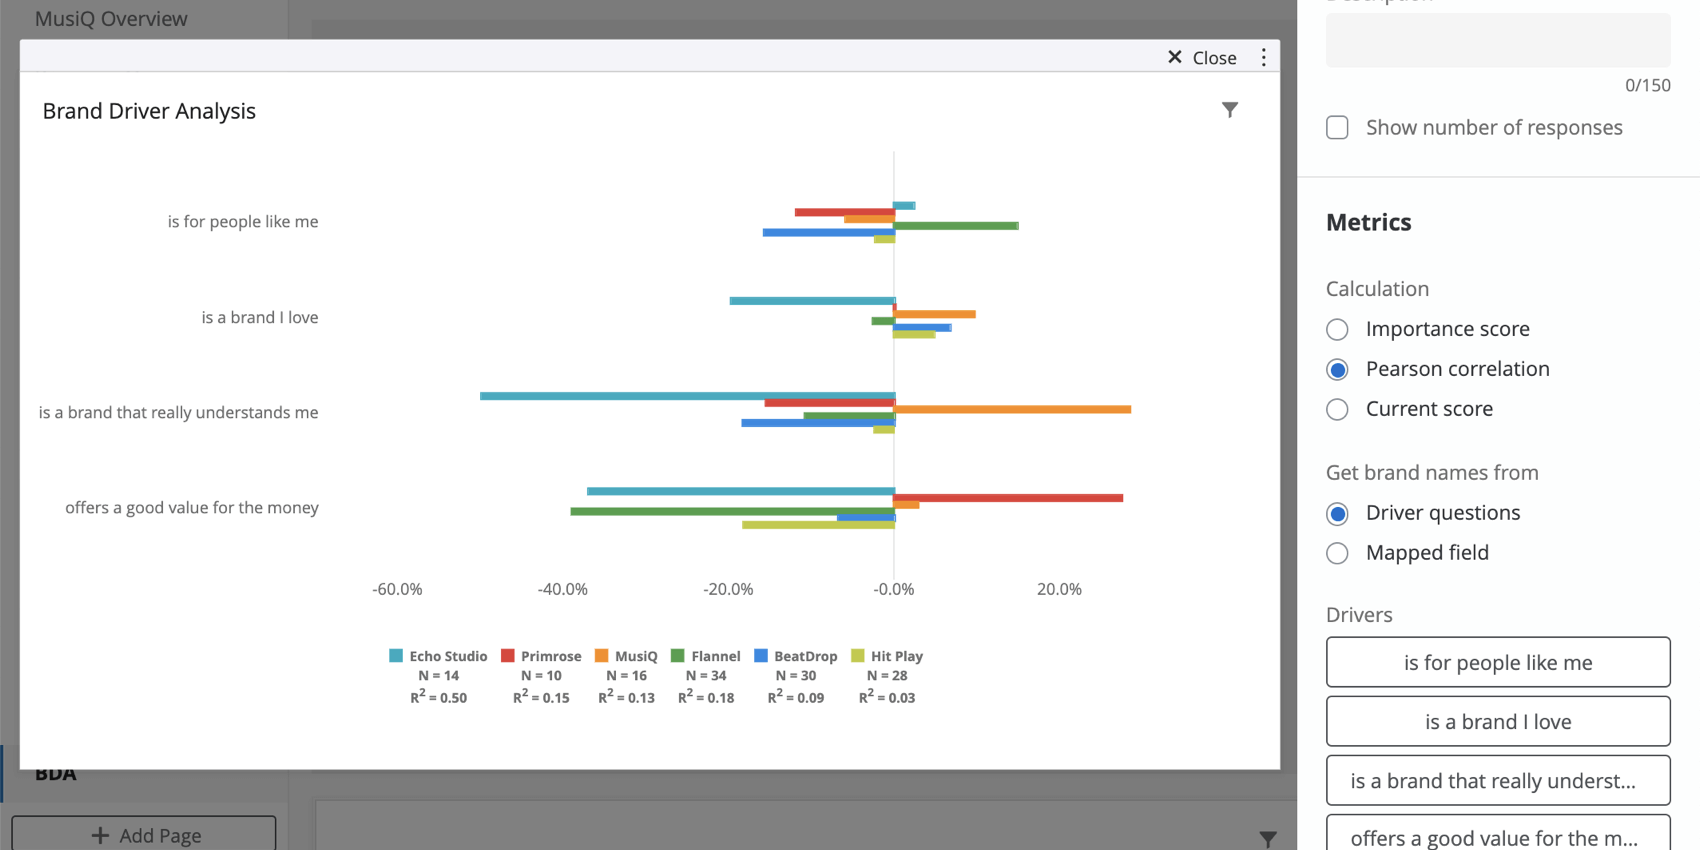 Chart set to pearson correlation. Data is visualized as bars coming from a center axis